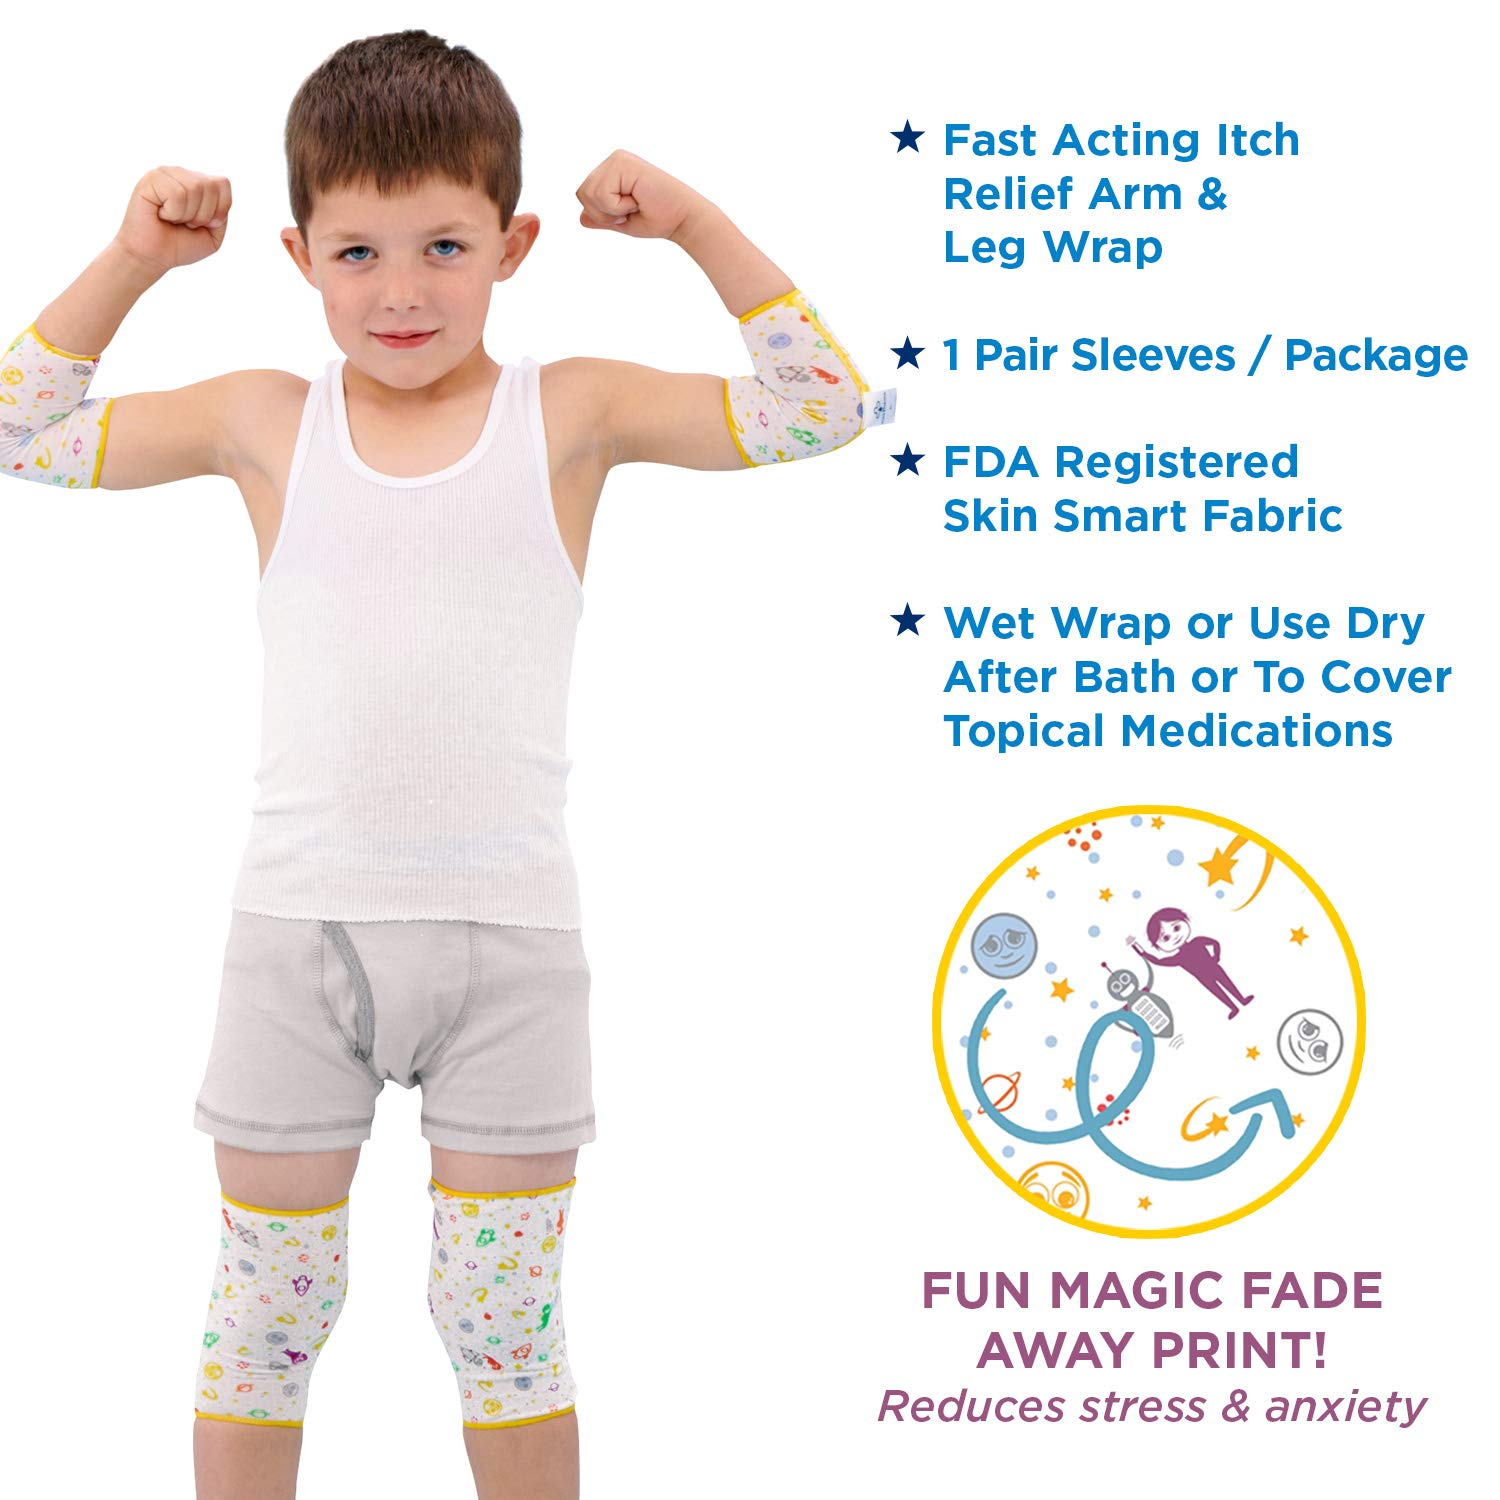 Eczema Relief Wrap Leg & Arm Sleeves for Moderate to Severe Eczema  Treatment – Also Used as Wet